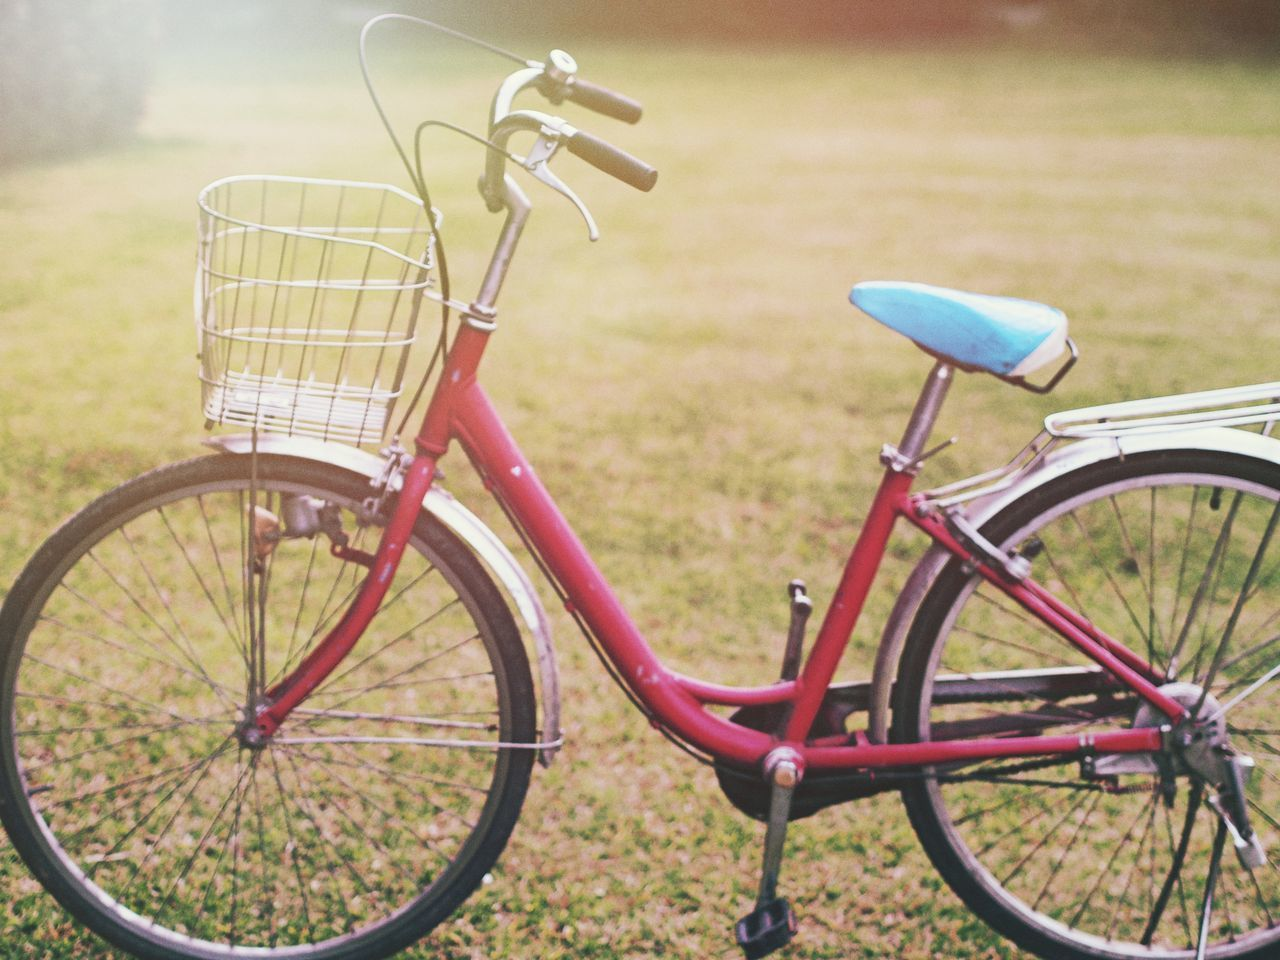 Bicycle Transportation Mode Of Transport Stationary Land Vehicle Bicycle Basket No People Outdoors Wheel Day Nature